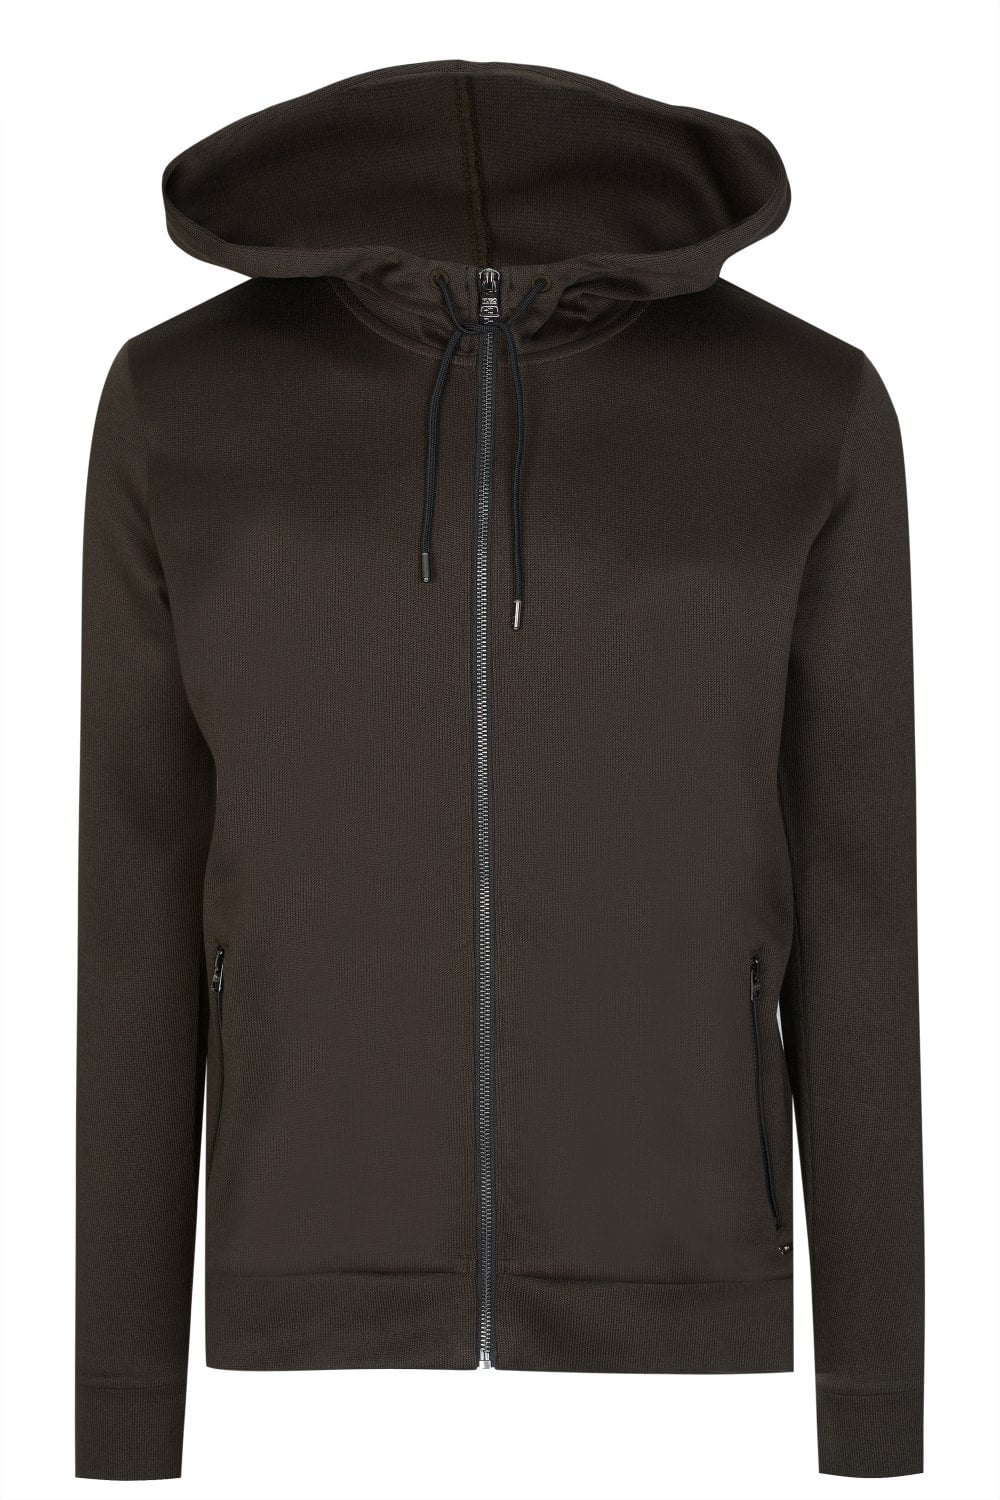 HUGO Hugo Boss Debasti Zip-down Hooded Sweatshirt - Clothing from ... 8012e8edd52e